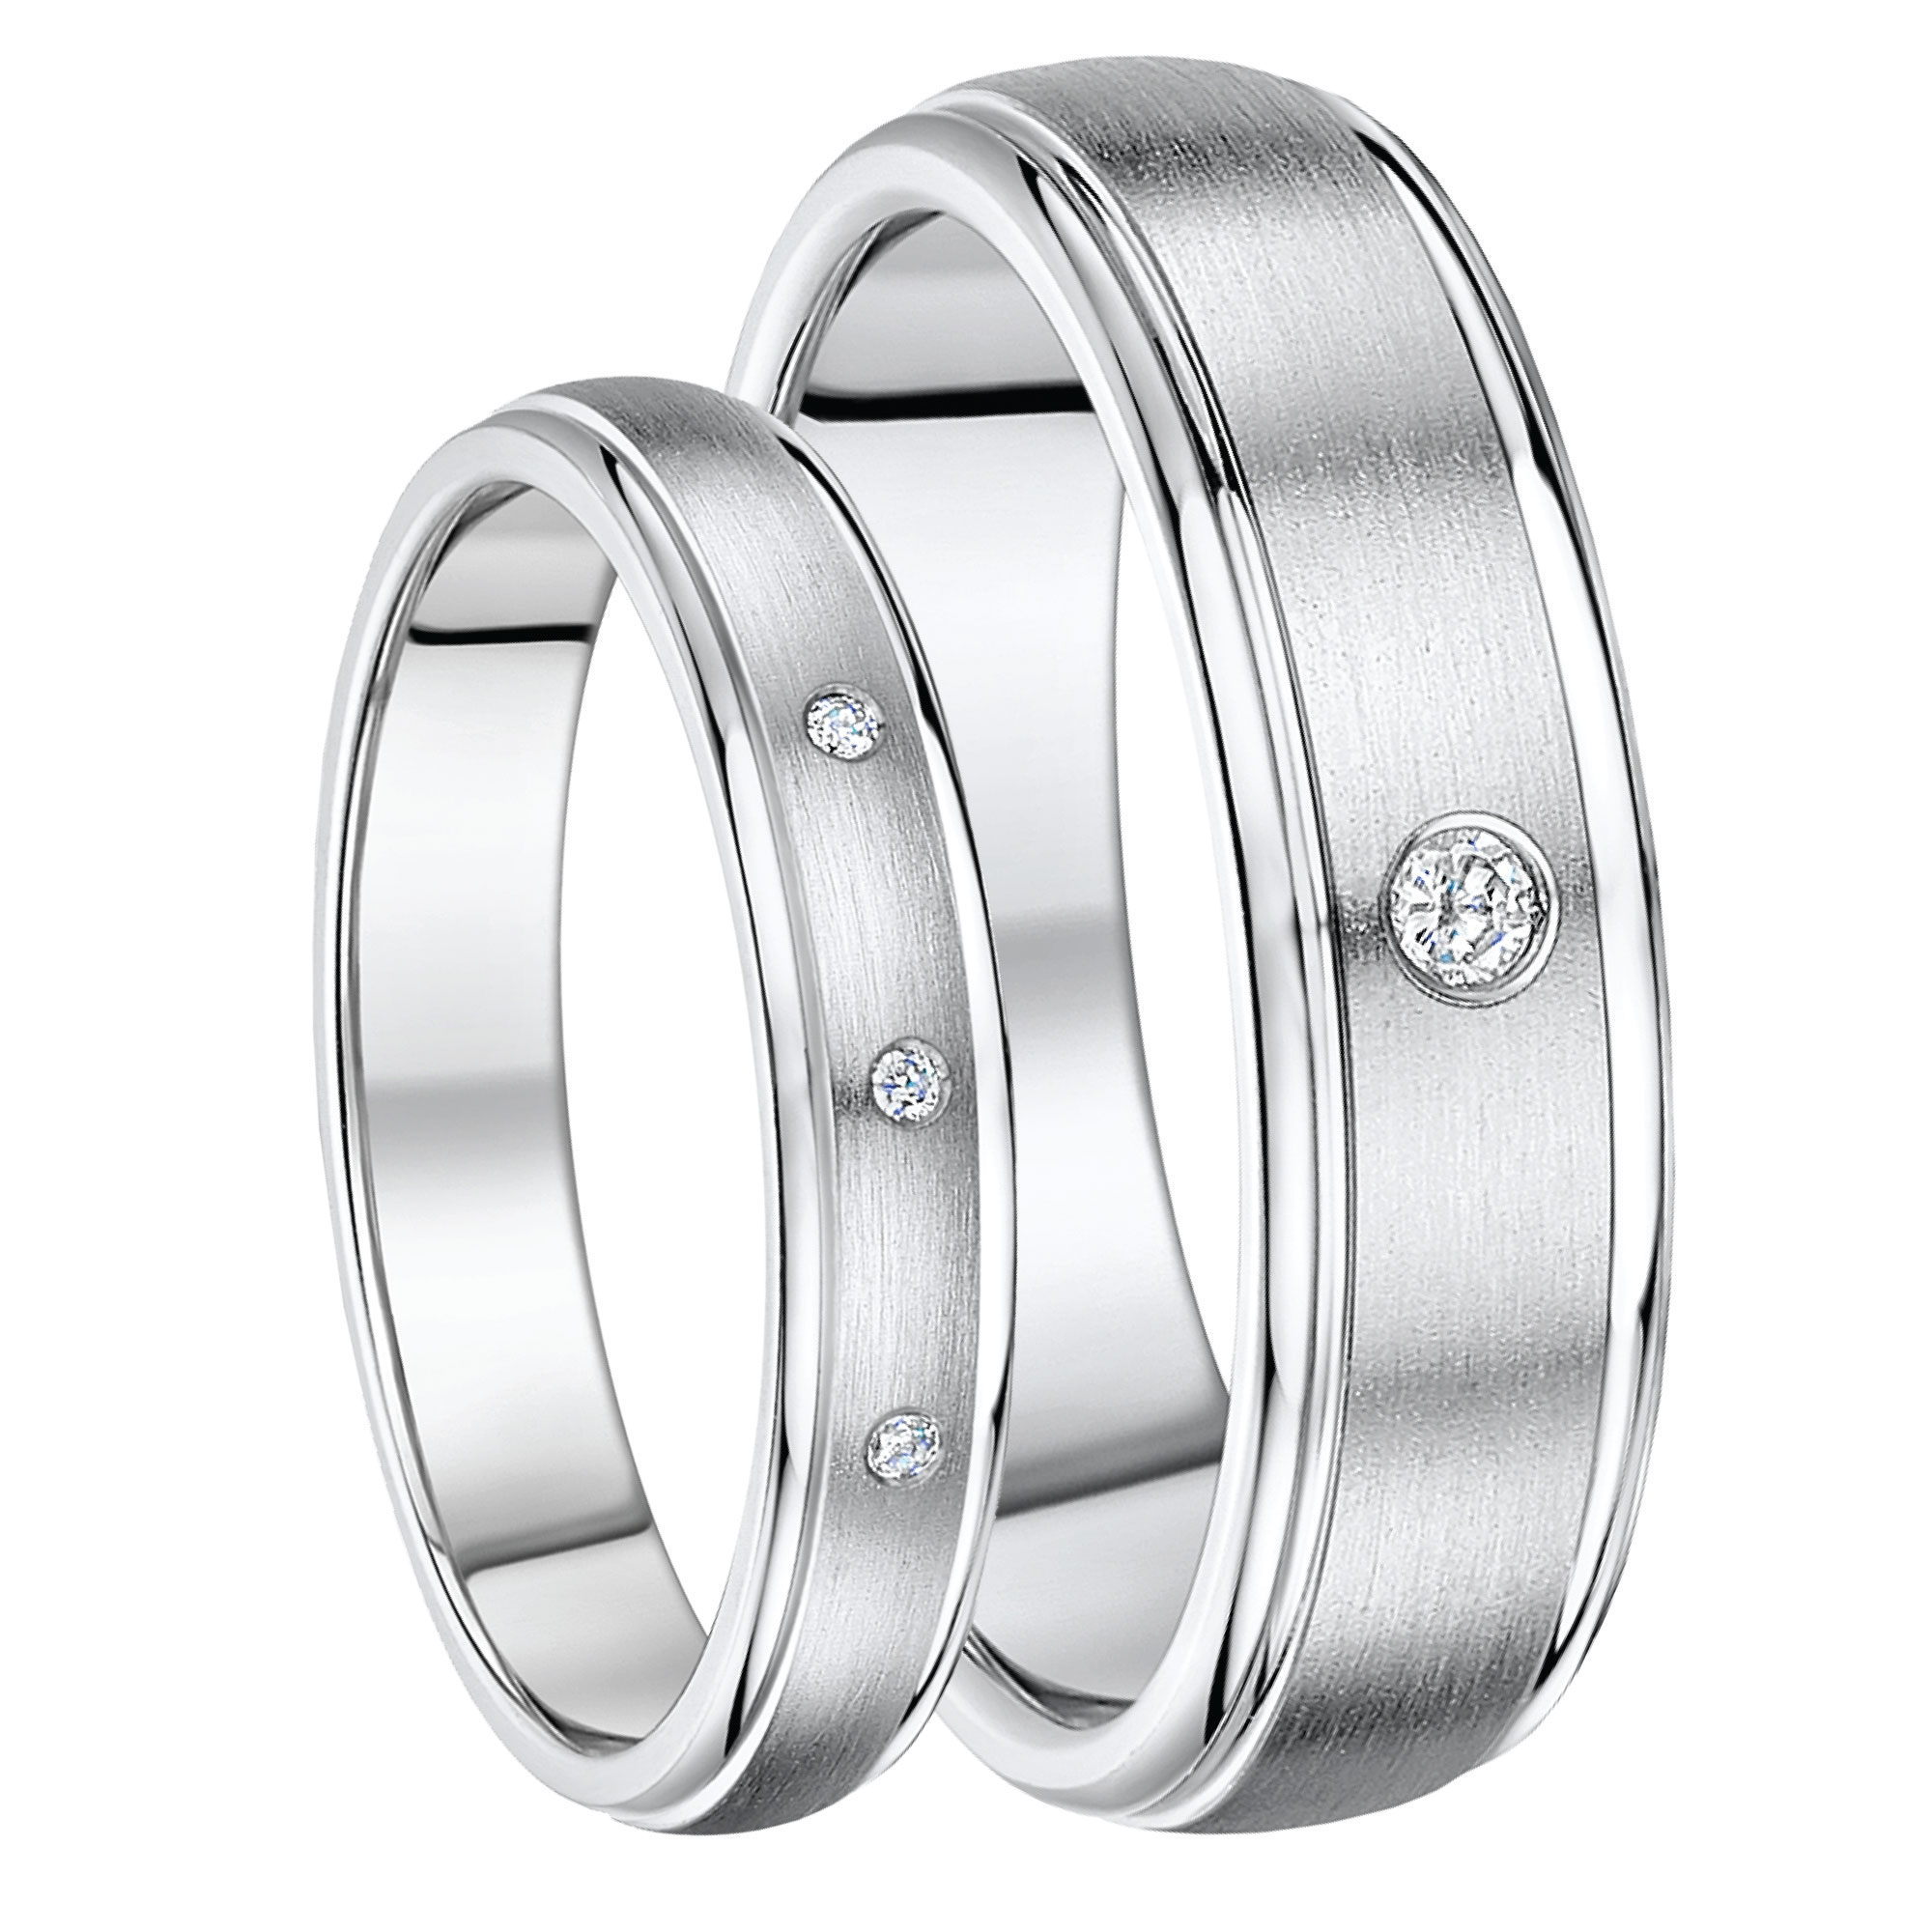 for platinum raised diamond dallaswhole christian whole solid the curved tone gold full sets palladium modern own his wedding ring design womens size com white of band simple celtic trio two bands large plain milgrain wide shaped your beaverbrooks gents unusual mens rings diamonds